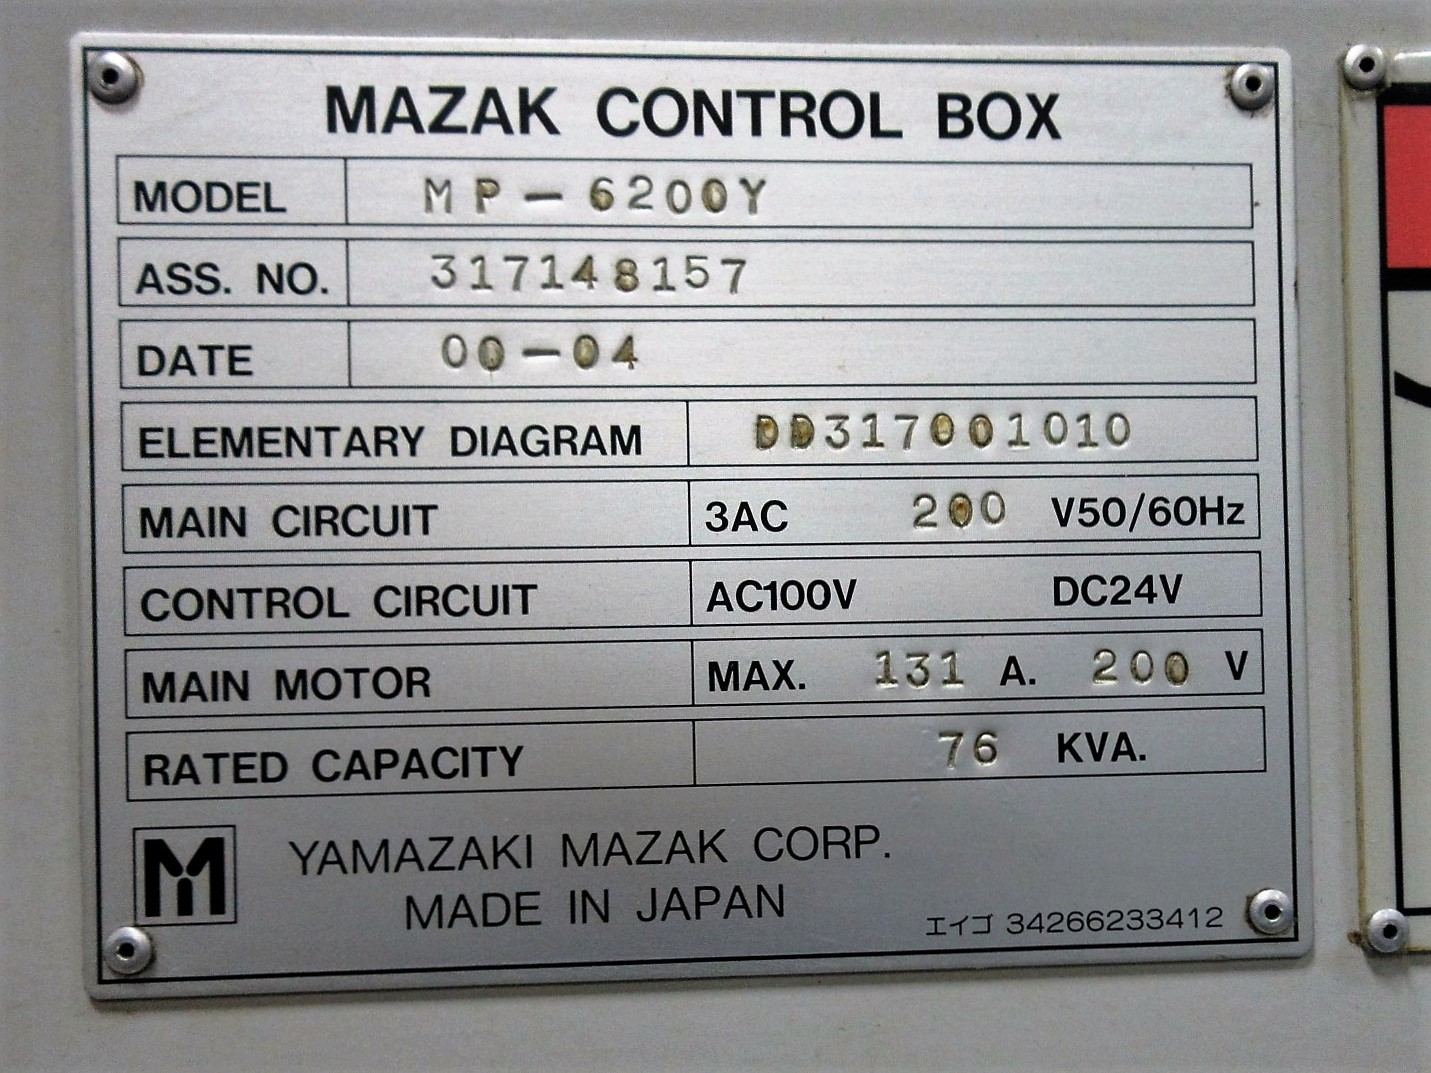 MAZAK MULTIPLEX 6200Y 8-AXIS CNC TWIN SPINDLE CNC TURNING CENTER - Image 12 of 12